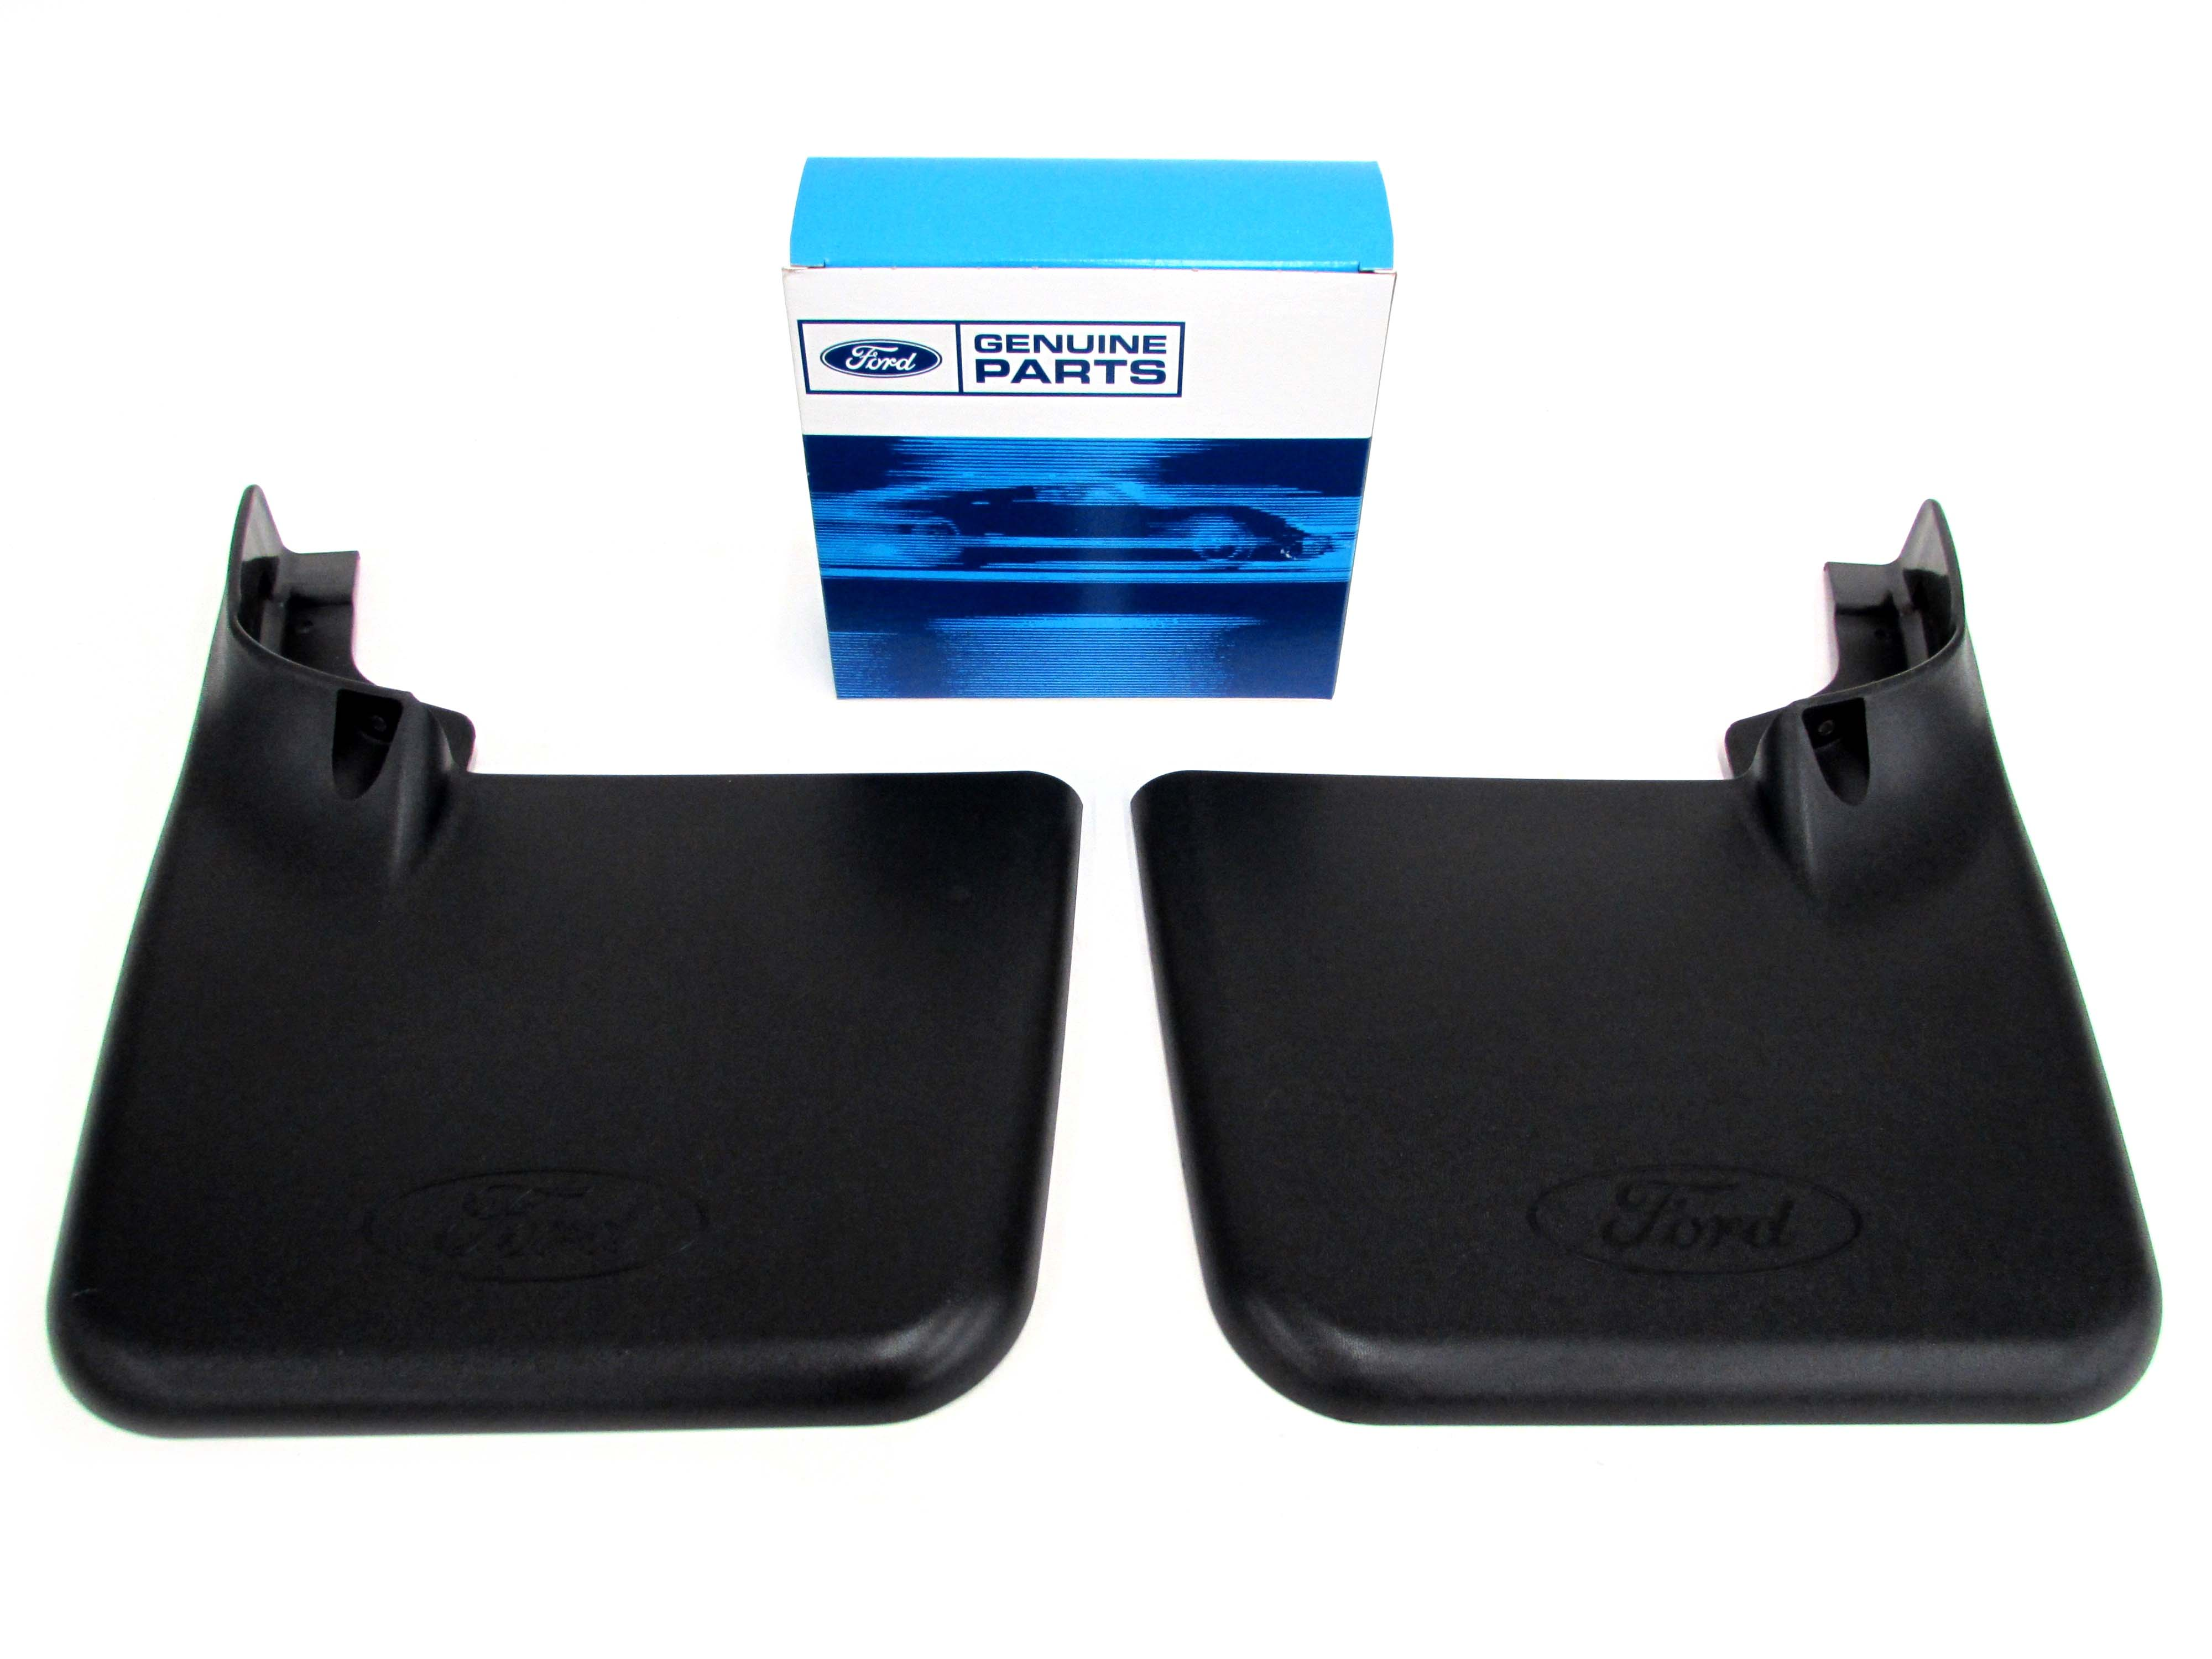 2004-2014 Ford F-150 Styleside Rear Splash Guards Mud Flaps Molded Black OEM NEW